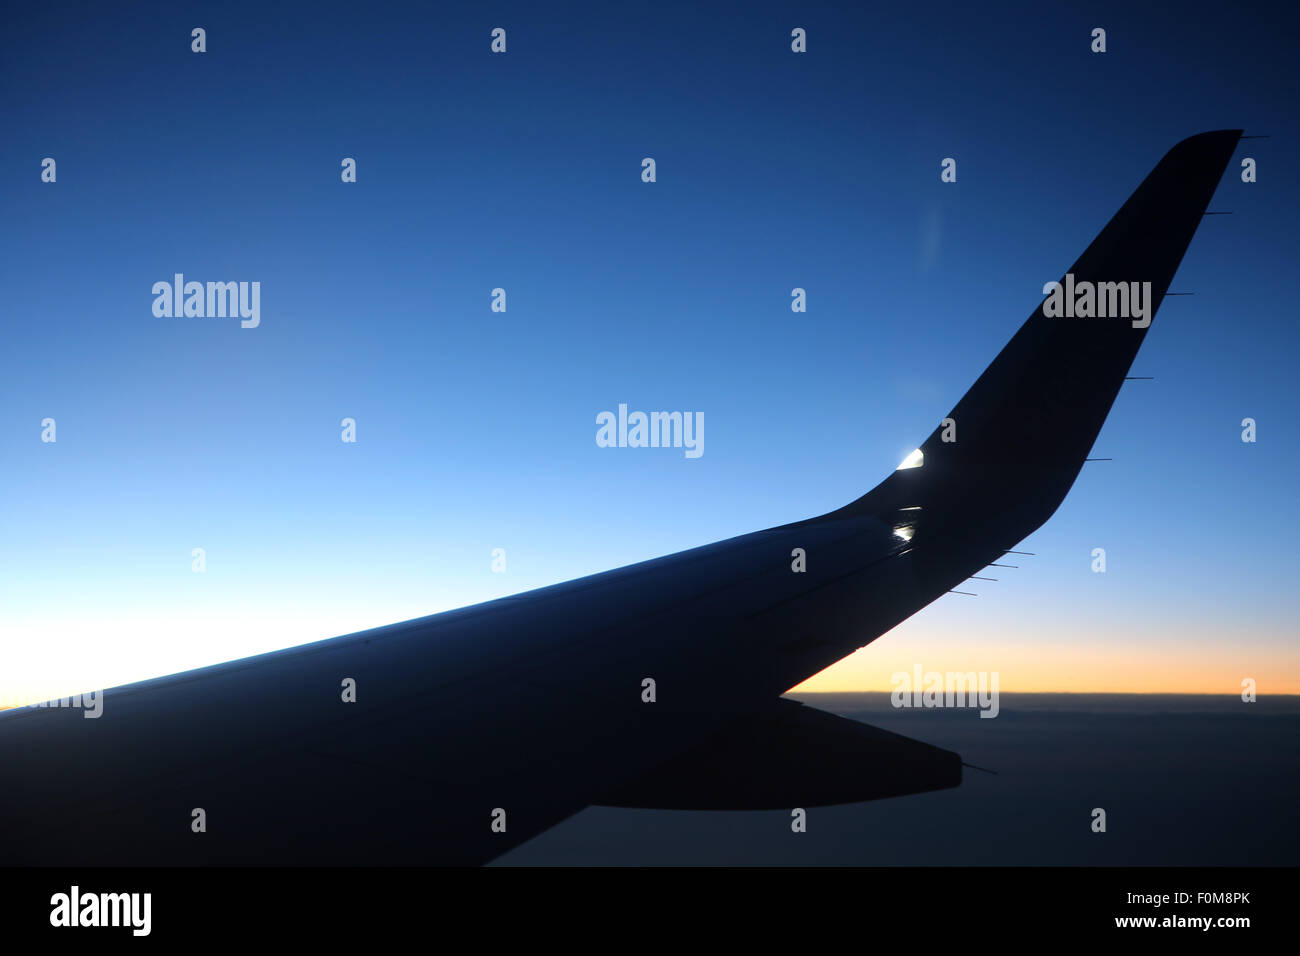 silhouette of airplane wing at dusk - Stock Image